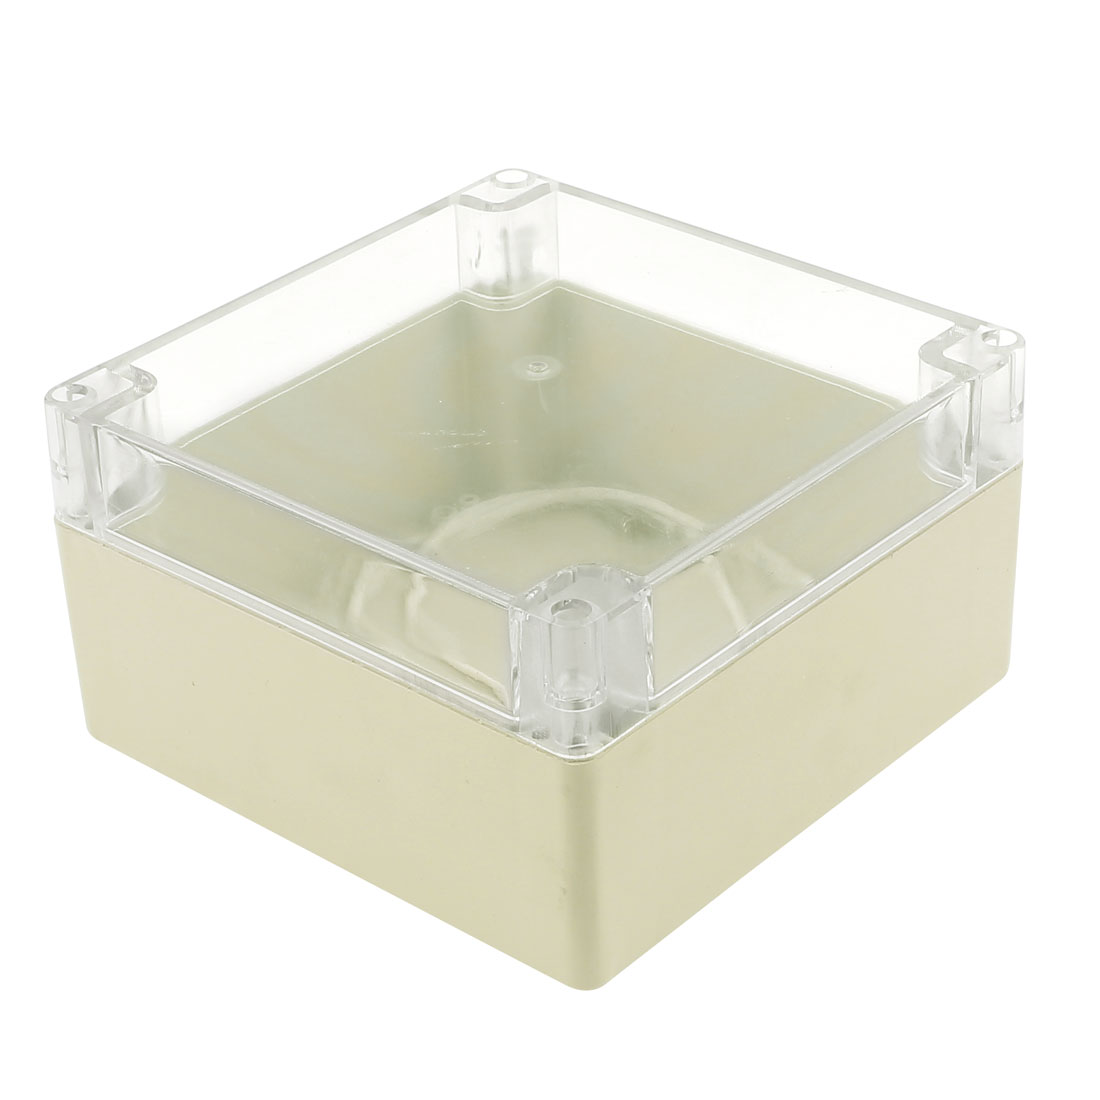 160 x 160 x 90mm Dustproof IP65 Junction Box Terminal Connecting Box Enclosure